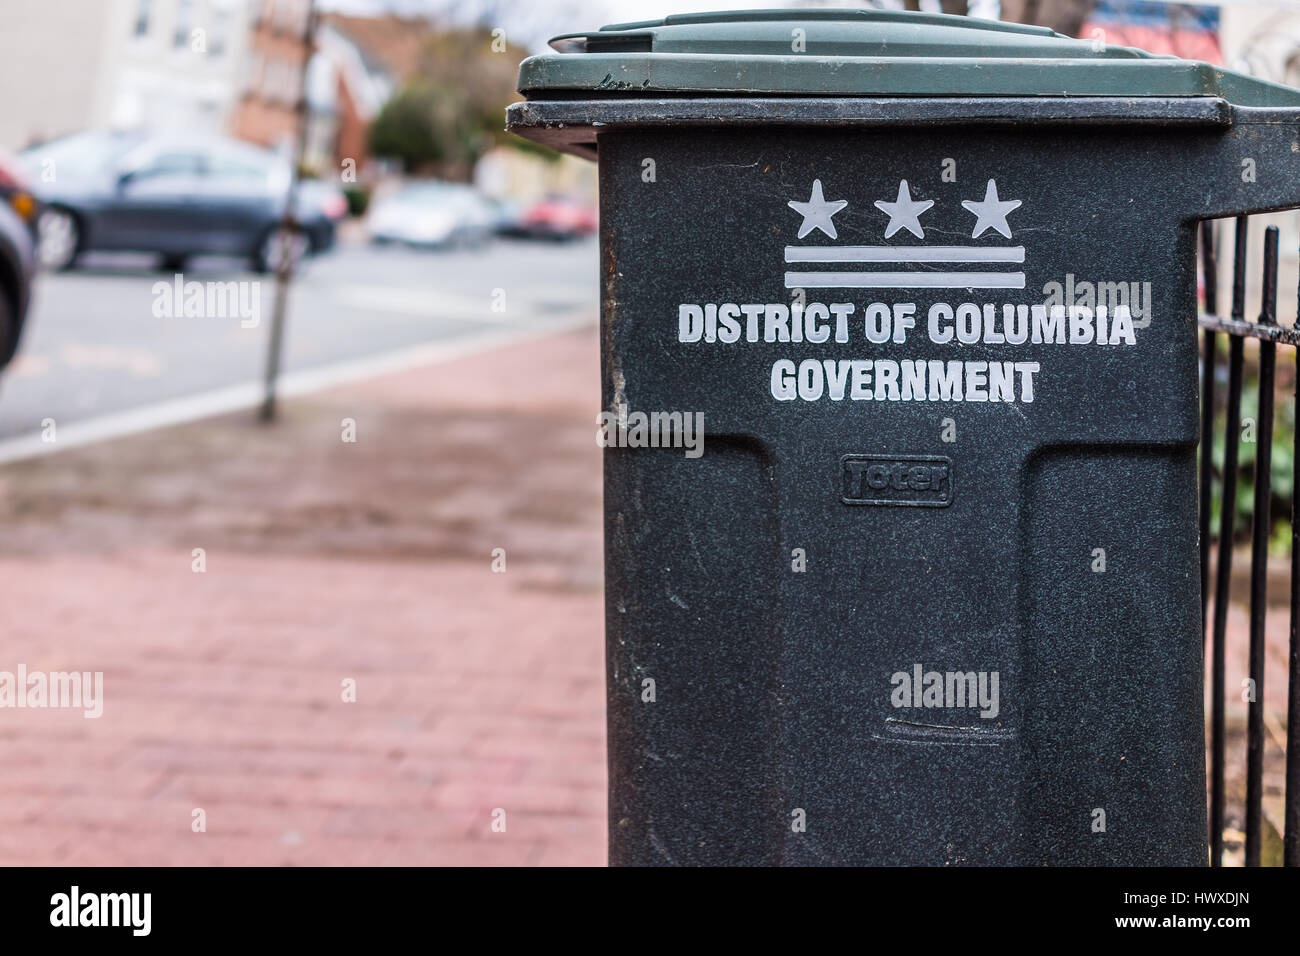 Washington DC, USA - March 20, 2017: District of Columbia government sign on trash can on street - Stock Image